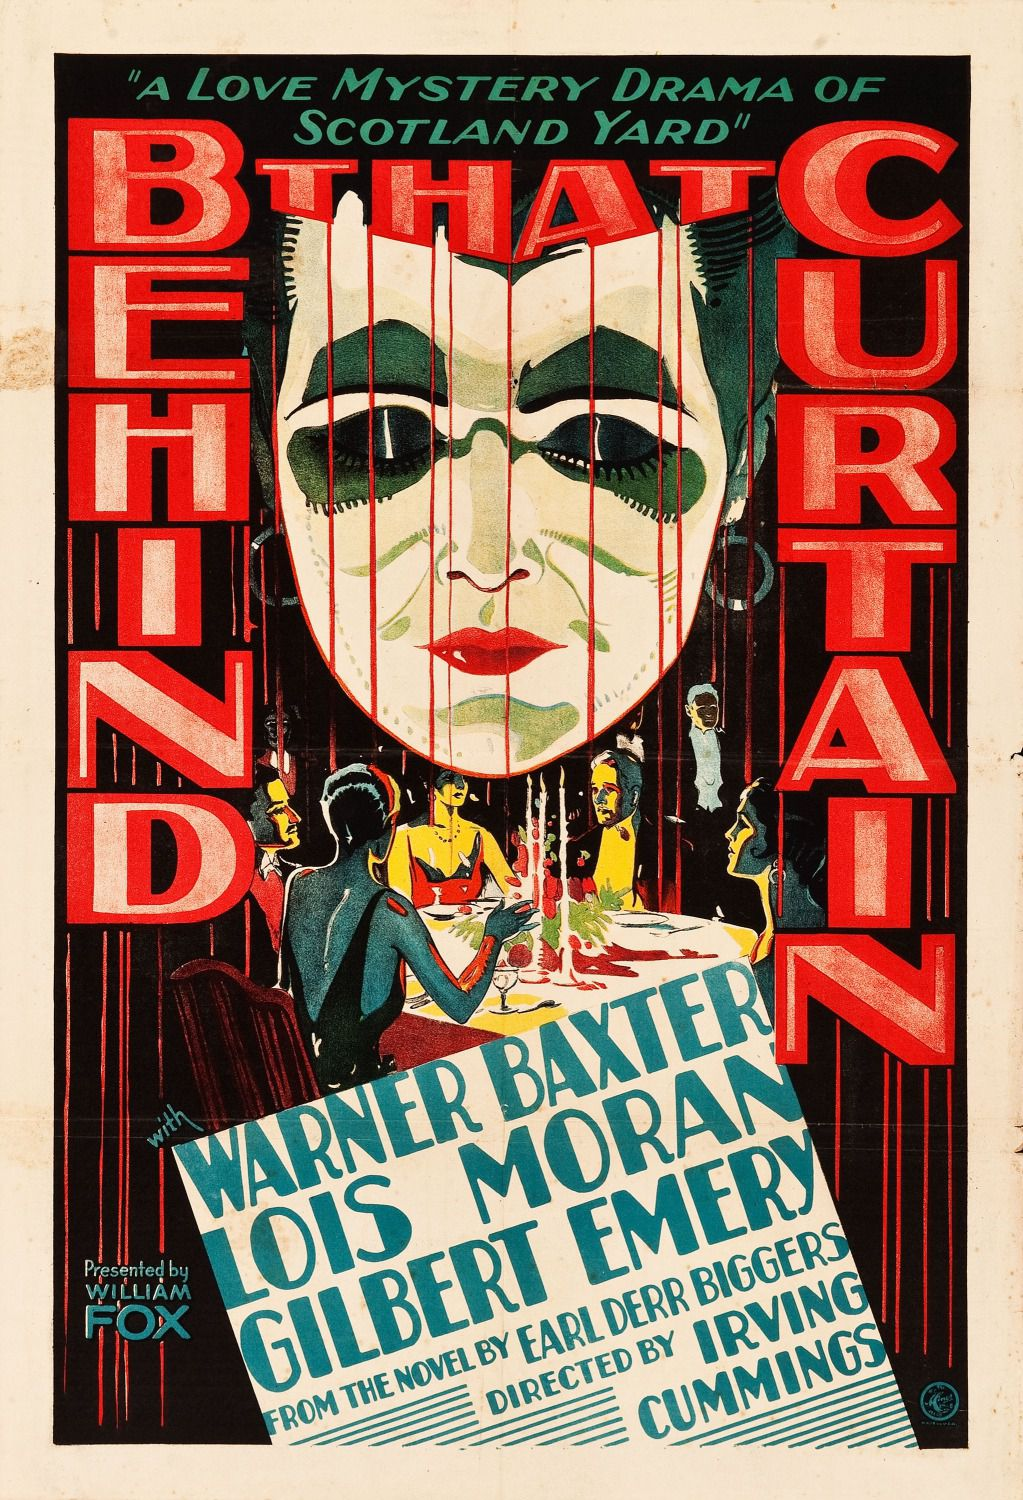 Behind that Curtain (1929) - Cast: Warner Baxter, Lois Moran, E.L. Park, Boris Karloff - film poster